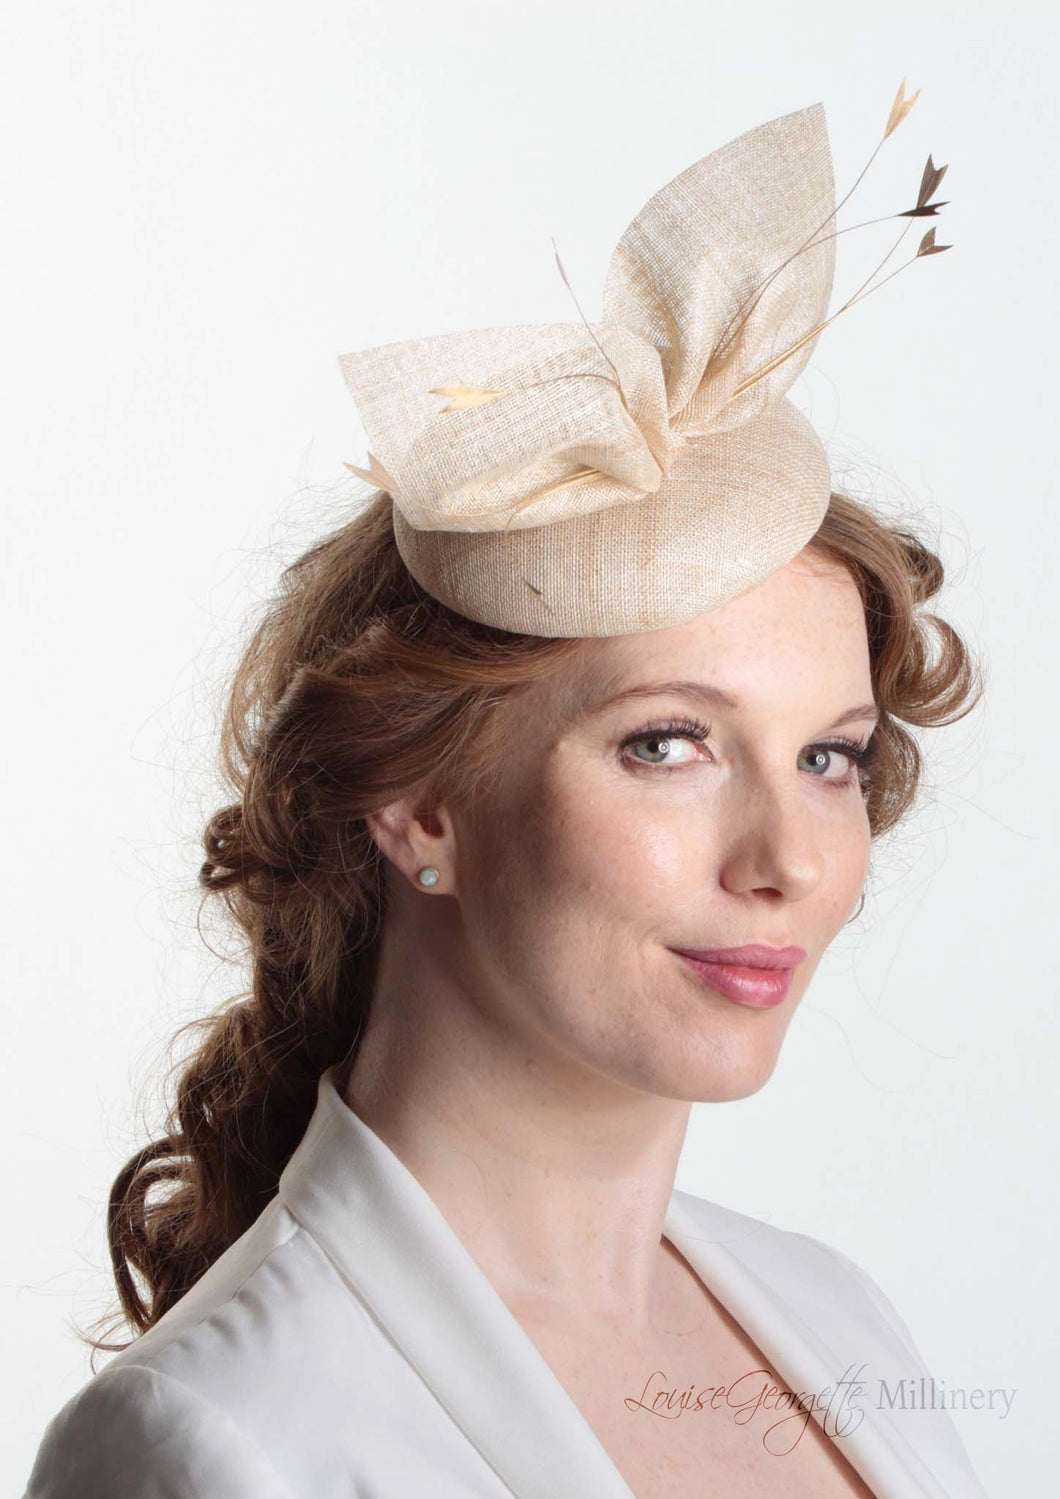 Hayley small disc Hat with bow detail in natural straw. Model side view. Hand